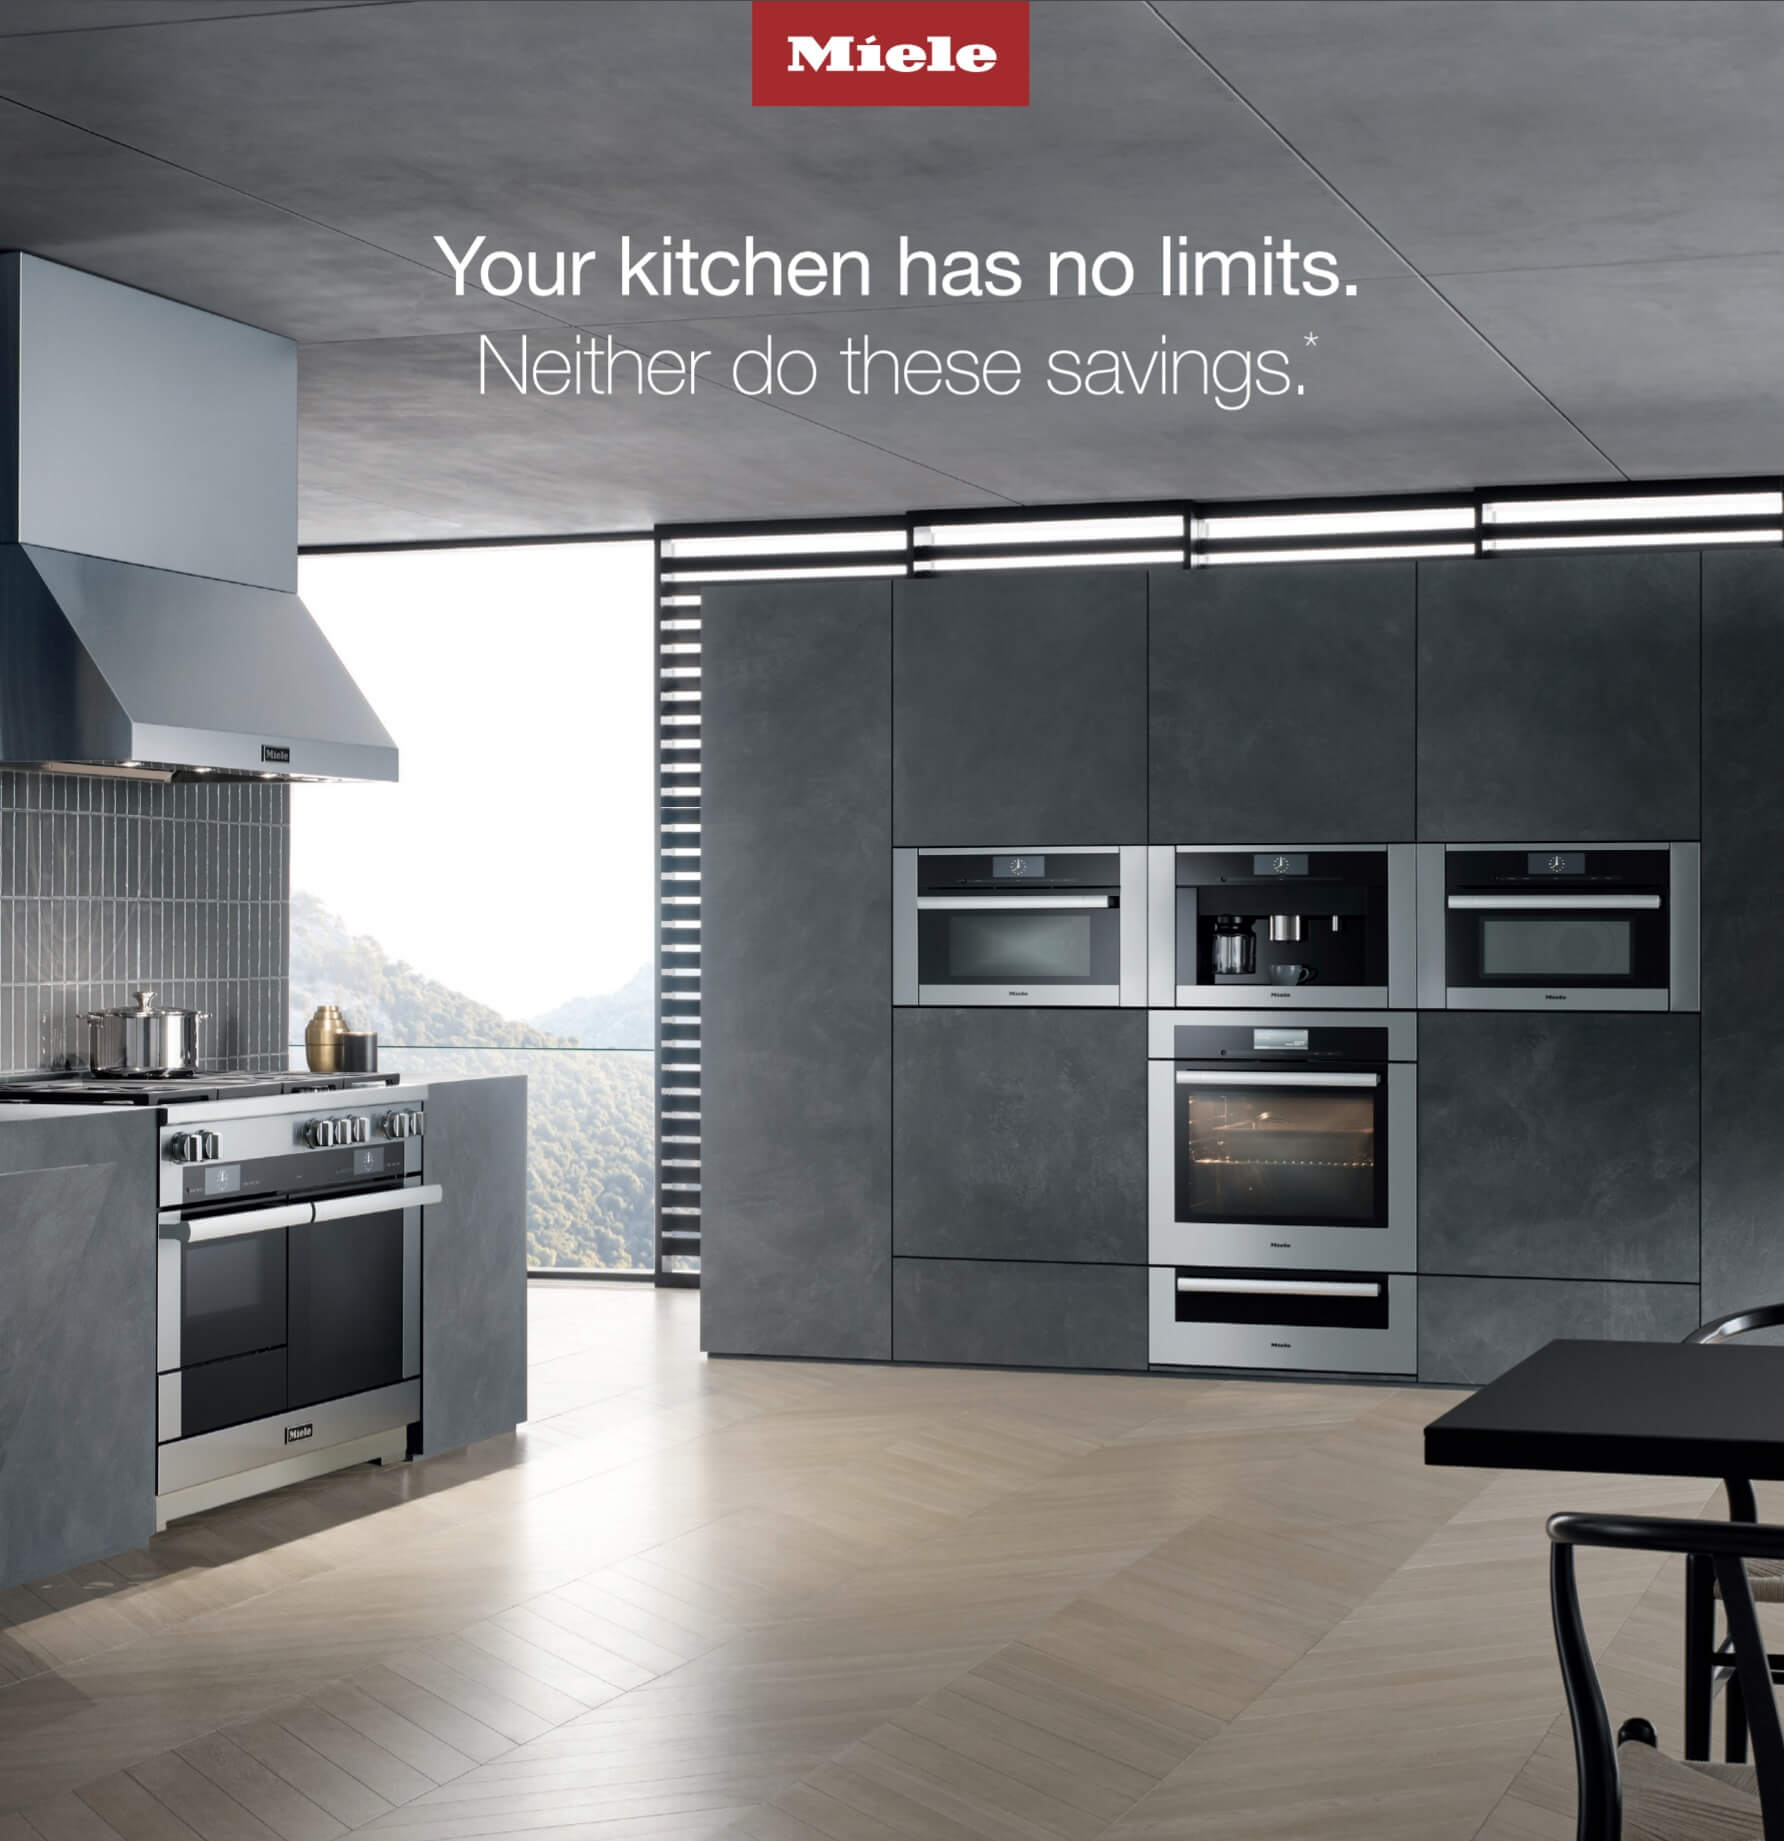 Save 10% on a Miele kitchen package